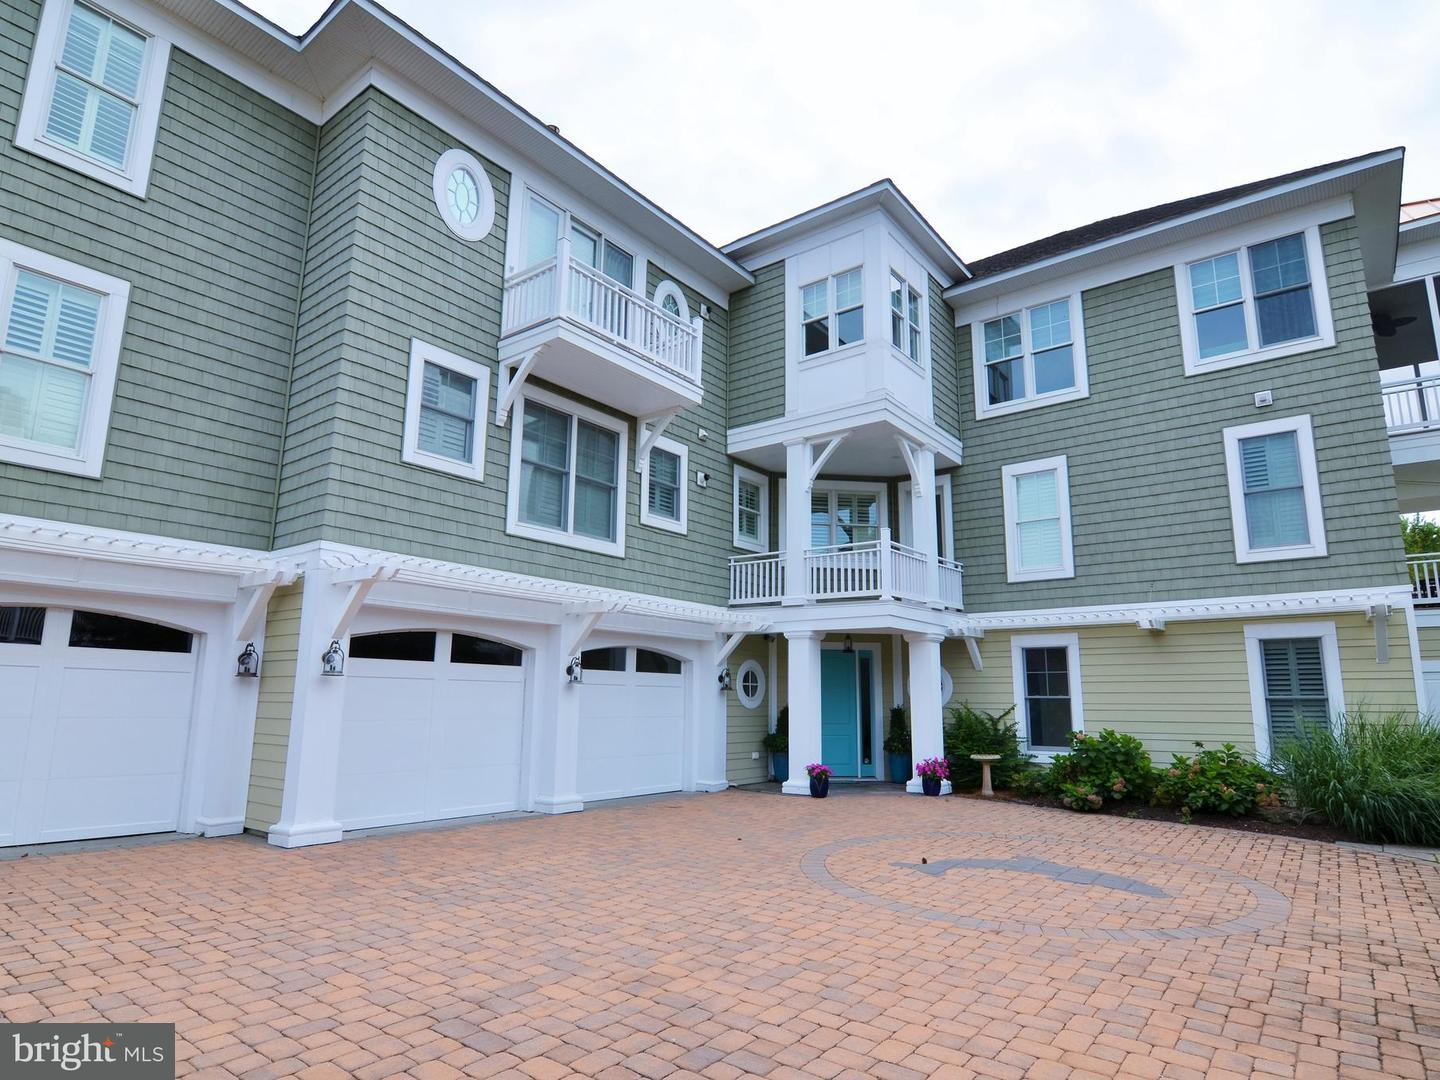 1002293530-300500805784-2018-09-25-15-08-24 31 Hall Ave | Rehoboth Beach, DE Real Estate For Sale | MLS# 1002293530  - Jack Lingo REALTOR